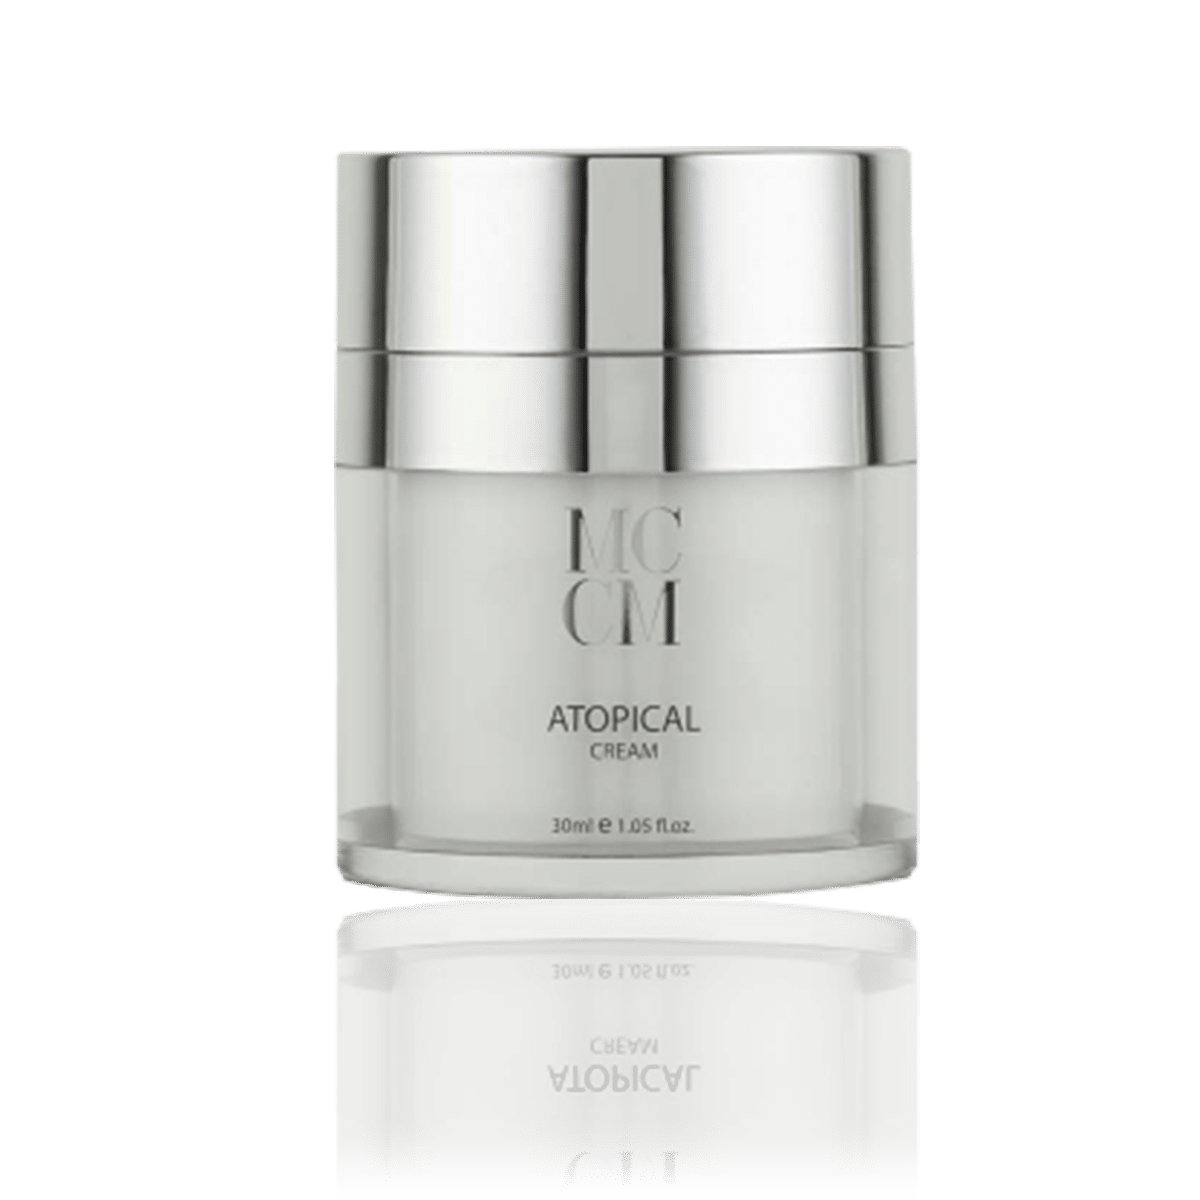 atopical-cream-tratamiento-facial-madrid